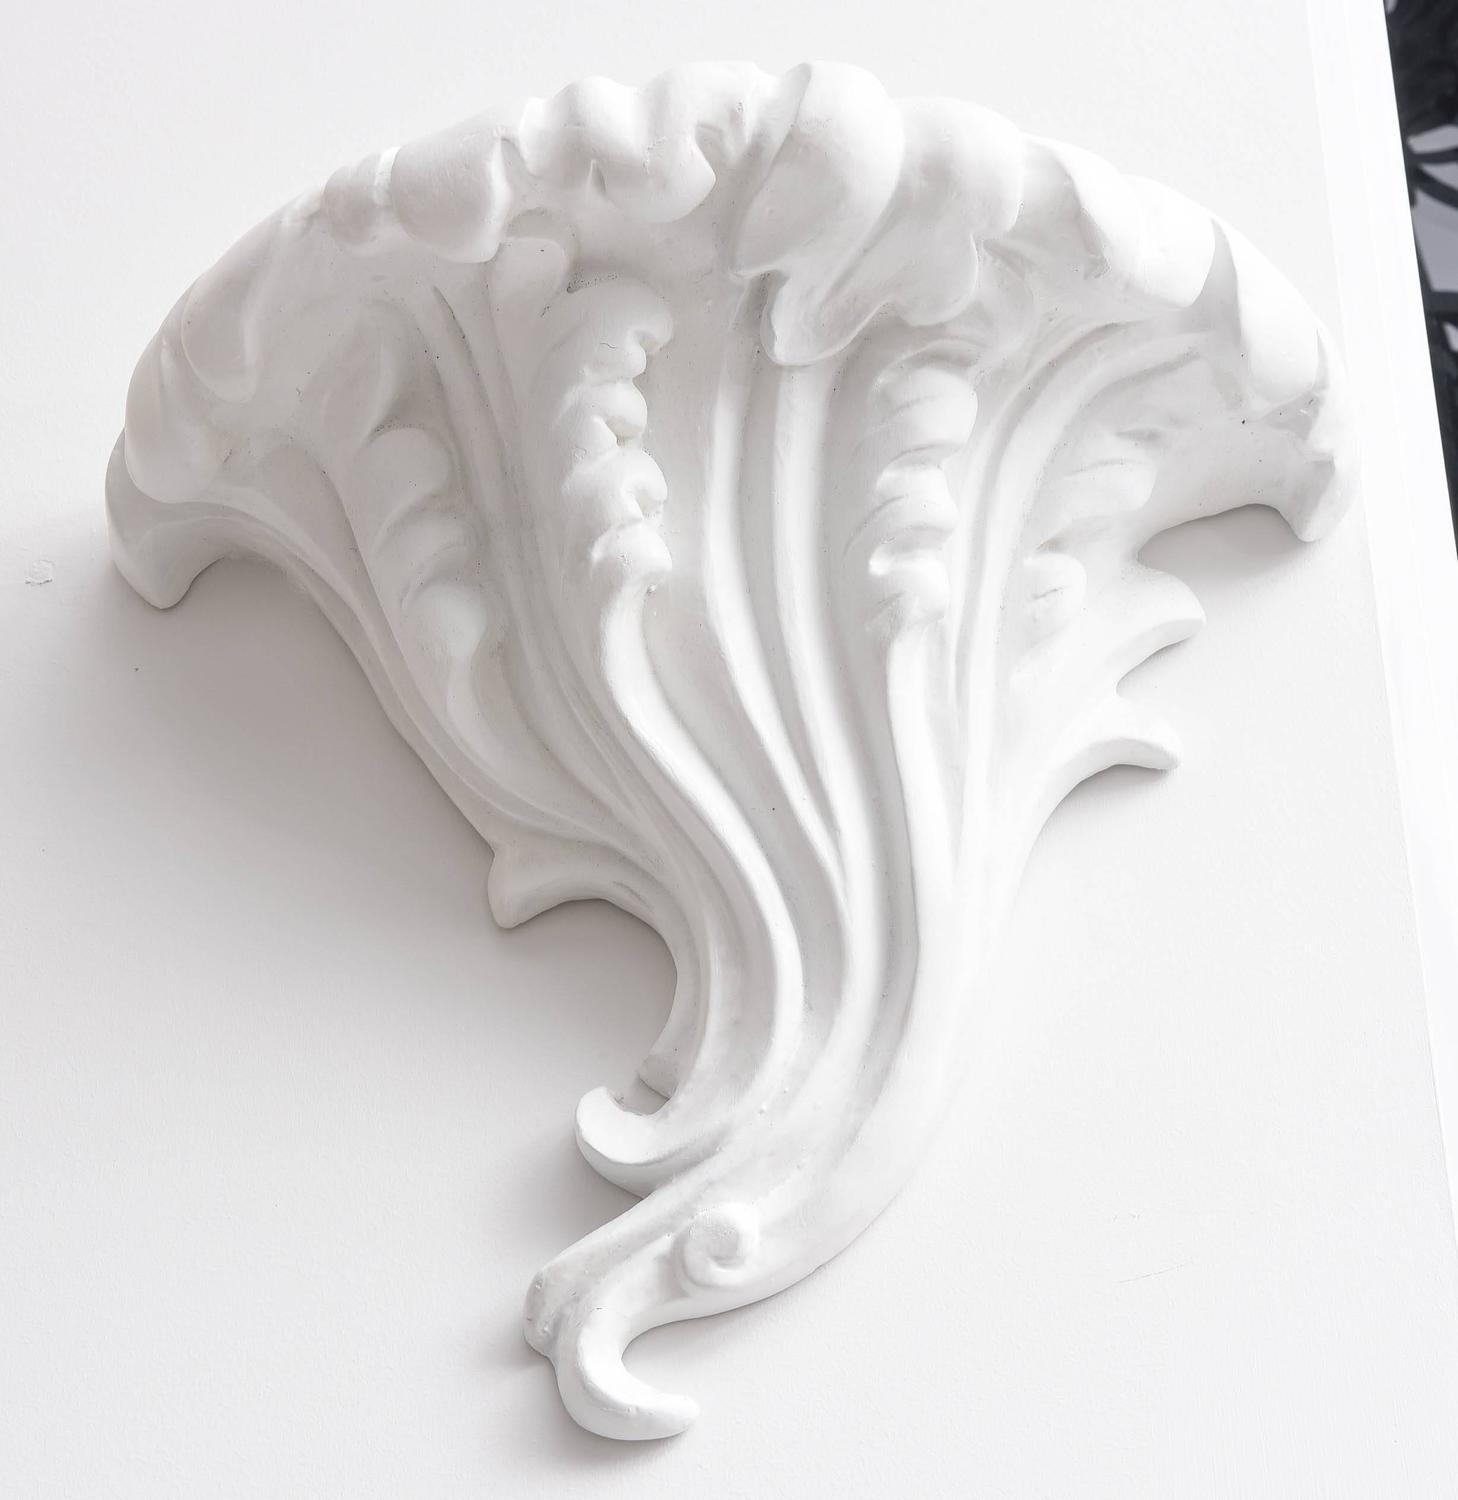 Plaster Cast Wall Lights : Pair Hollywood-Regency Style, Cast White Plaster Wall Sconces, 1940s For Sale at 1stdibs